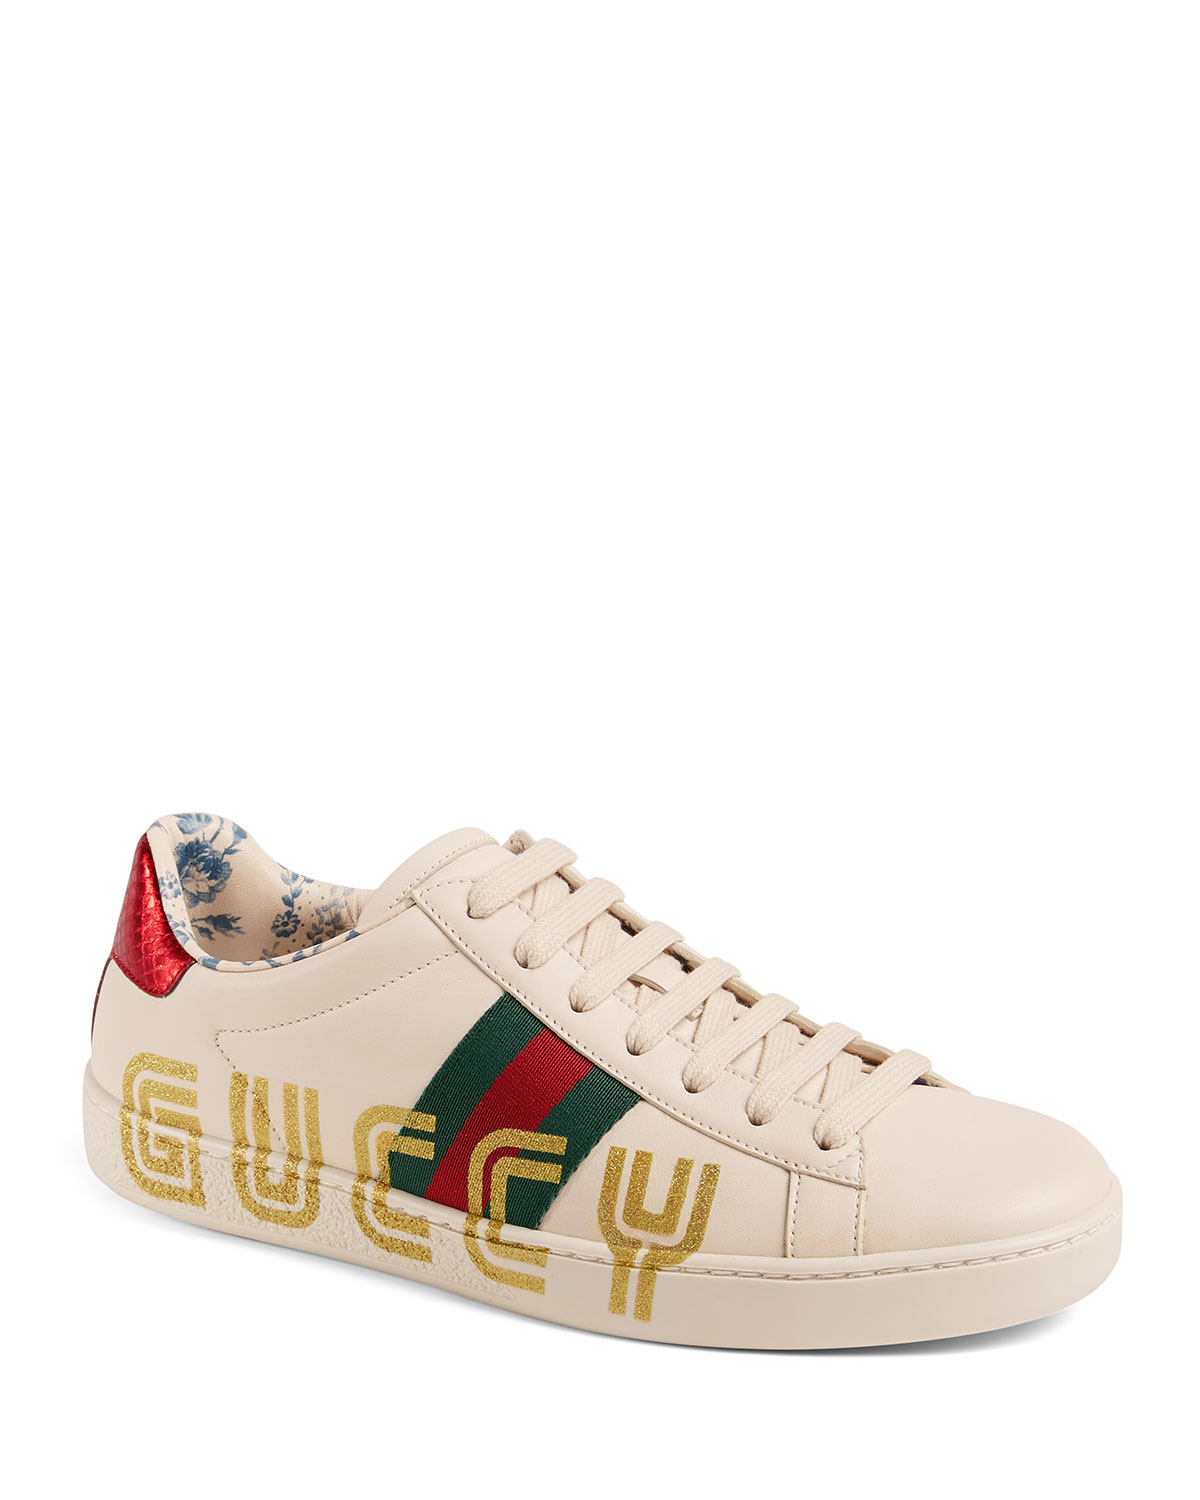 973dc58ef Gucci New Ace Guccy Leather Sneaker | Neiman Marcus